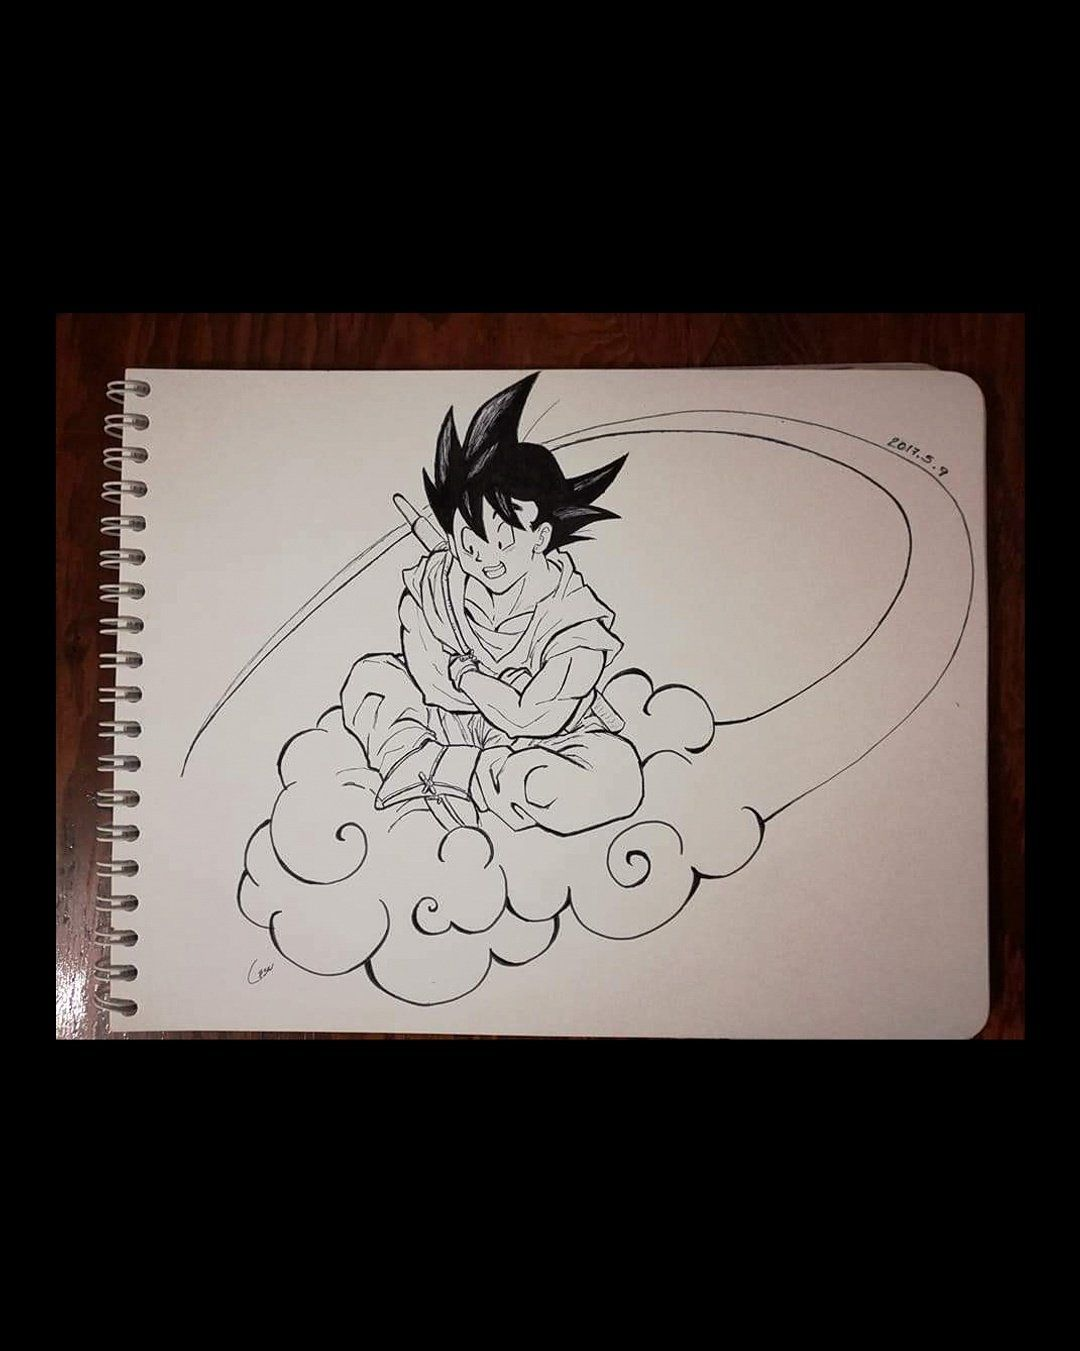 Goku on his flying nimbus ☁️ by xiuhcoatlicue dragonball